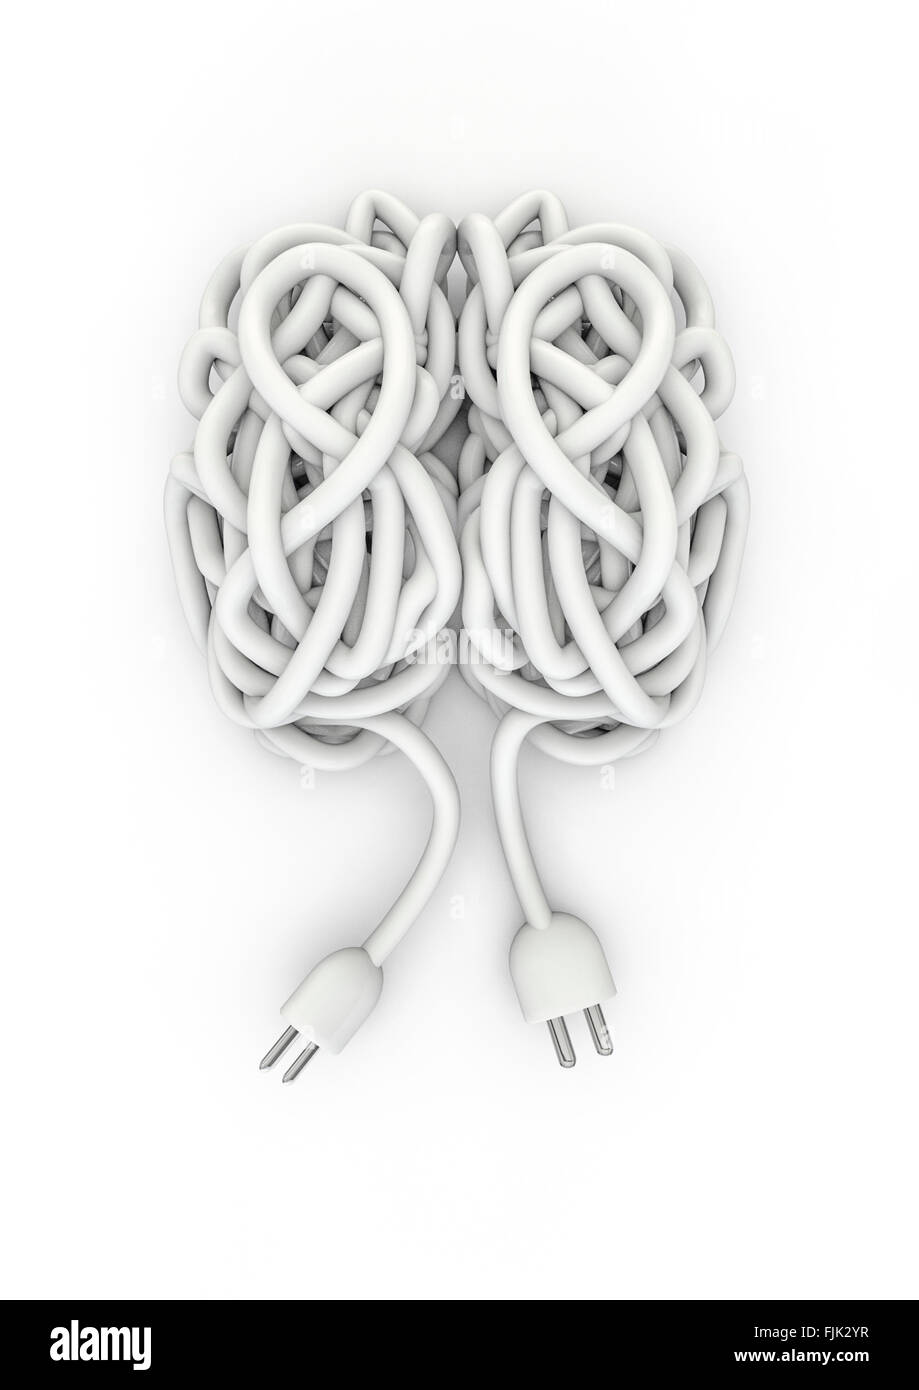 Wire brain / 3D render of brain made of electrical cord - Stock Image